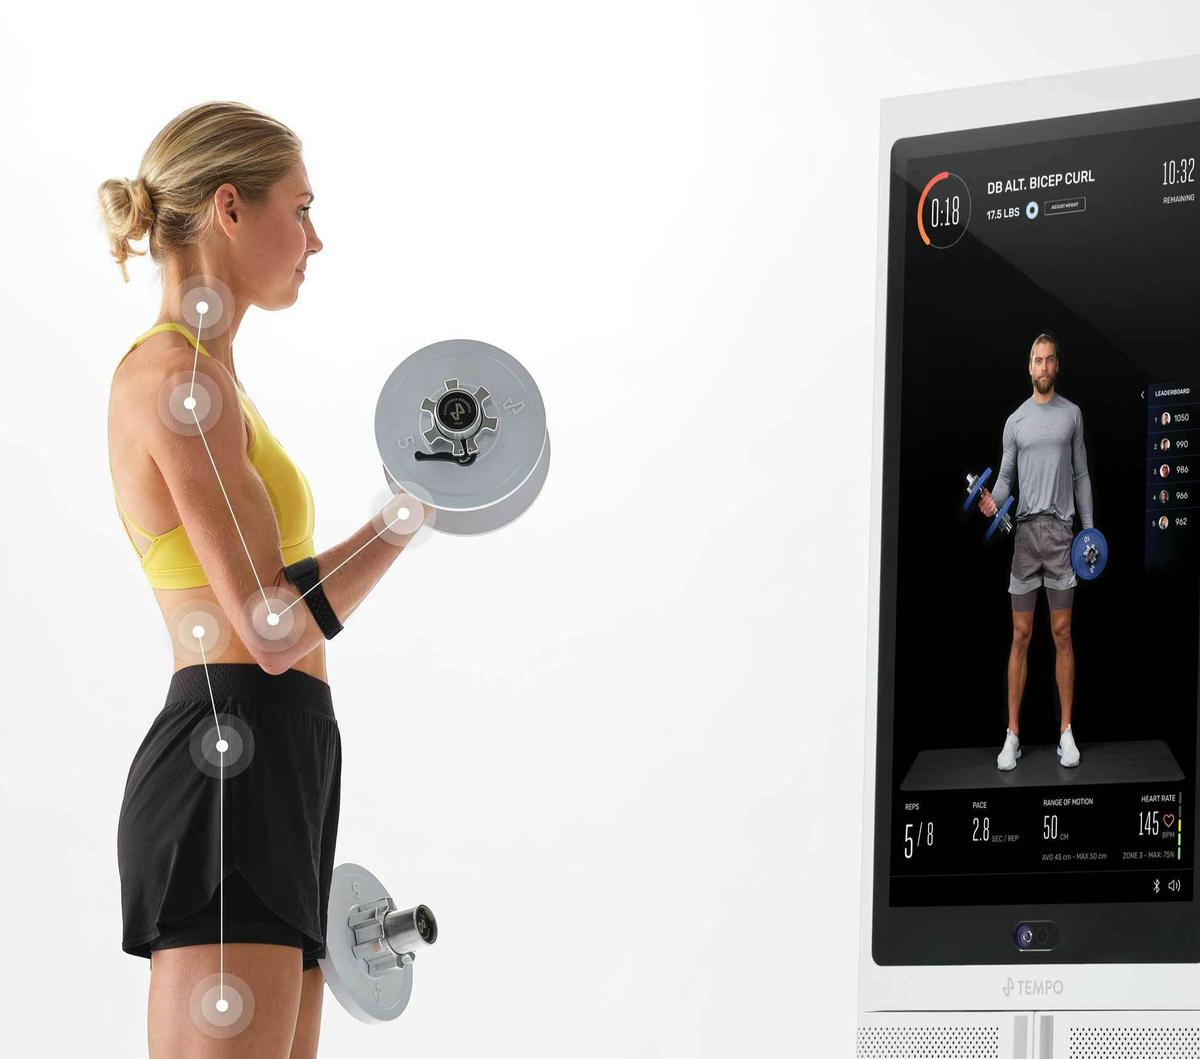 The system can capture the users form, offering suggestions on how to improve technique and make workouts safer and more efficient / Tempo